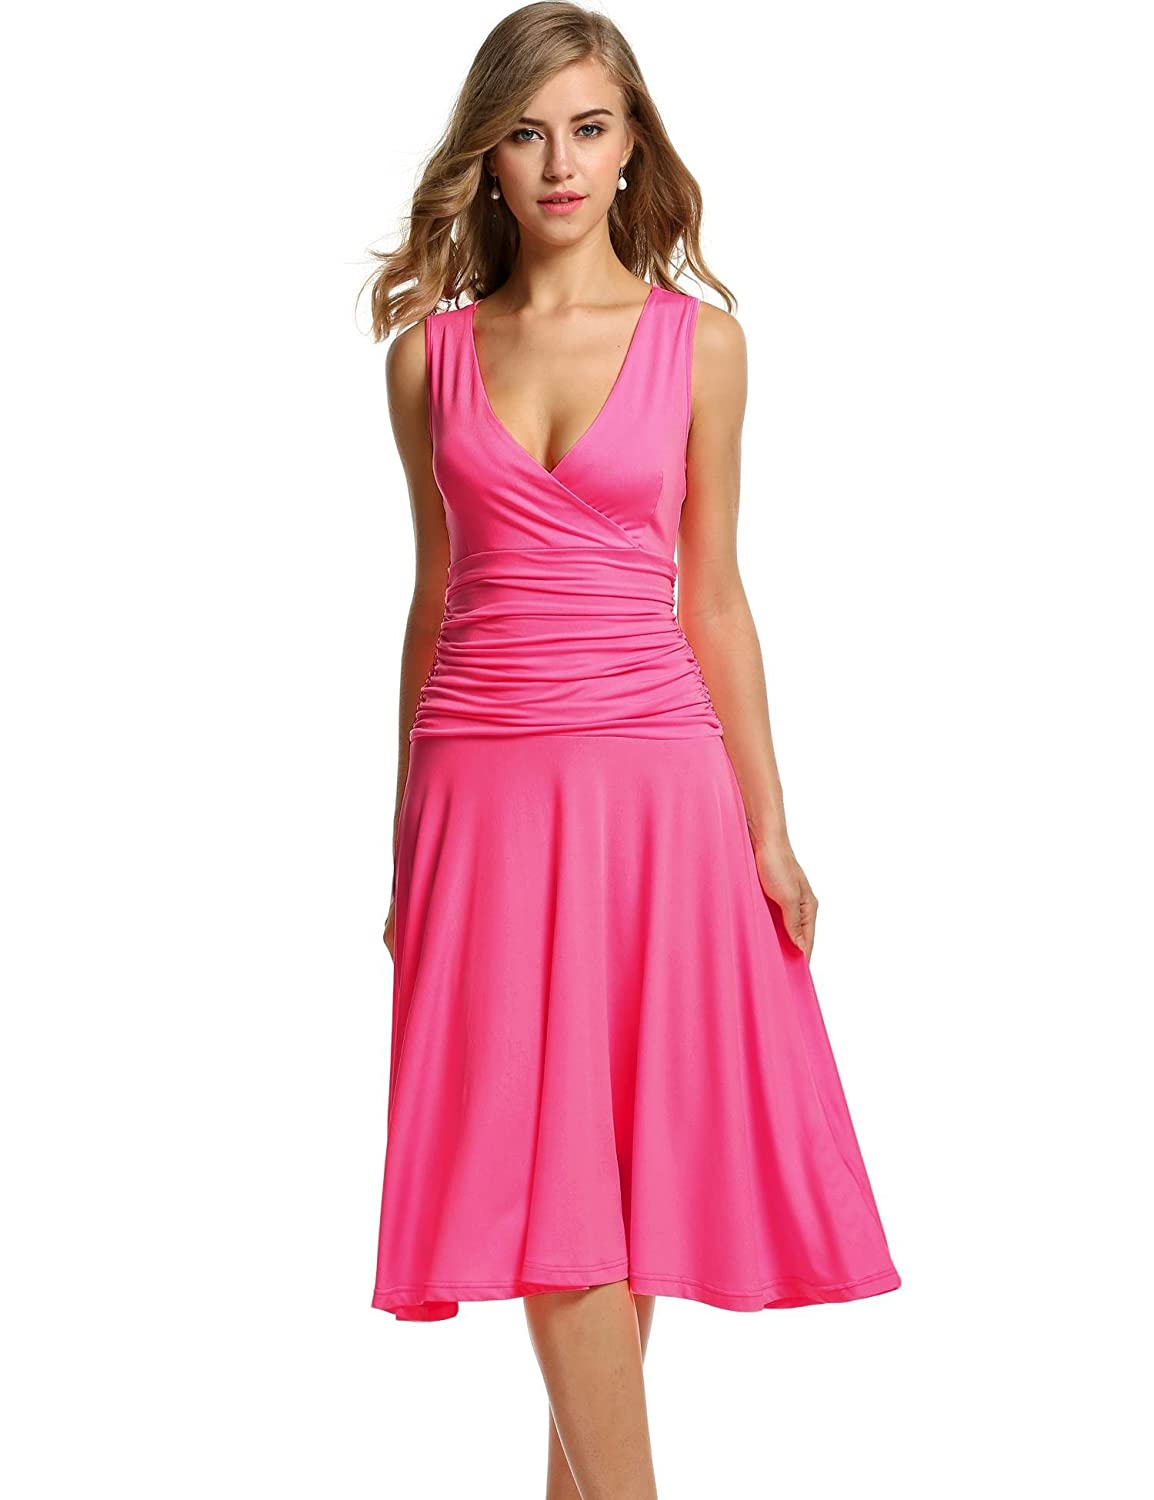 533dfa4a58a Meaneor Deep V Neck Cross Front Ruched Waist Sleeveless Tee Dress Plus  Size